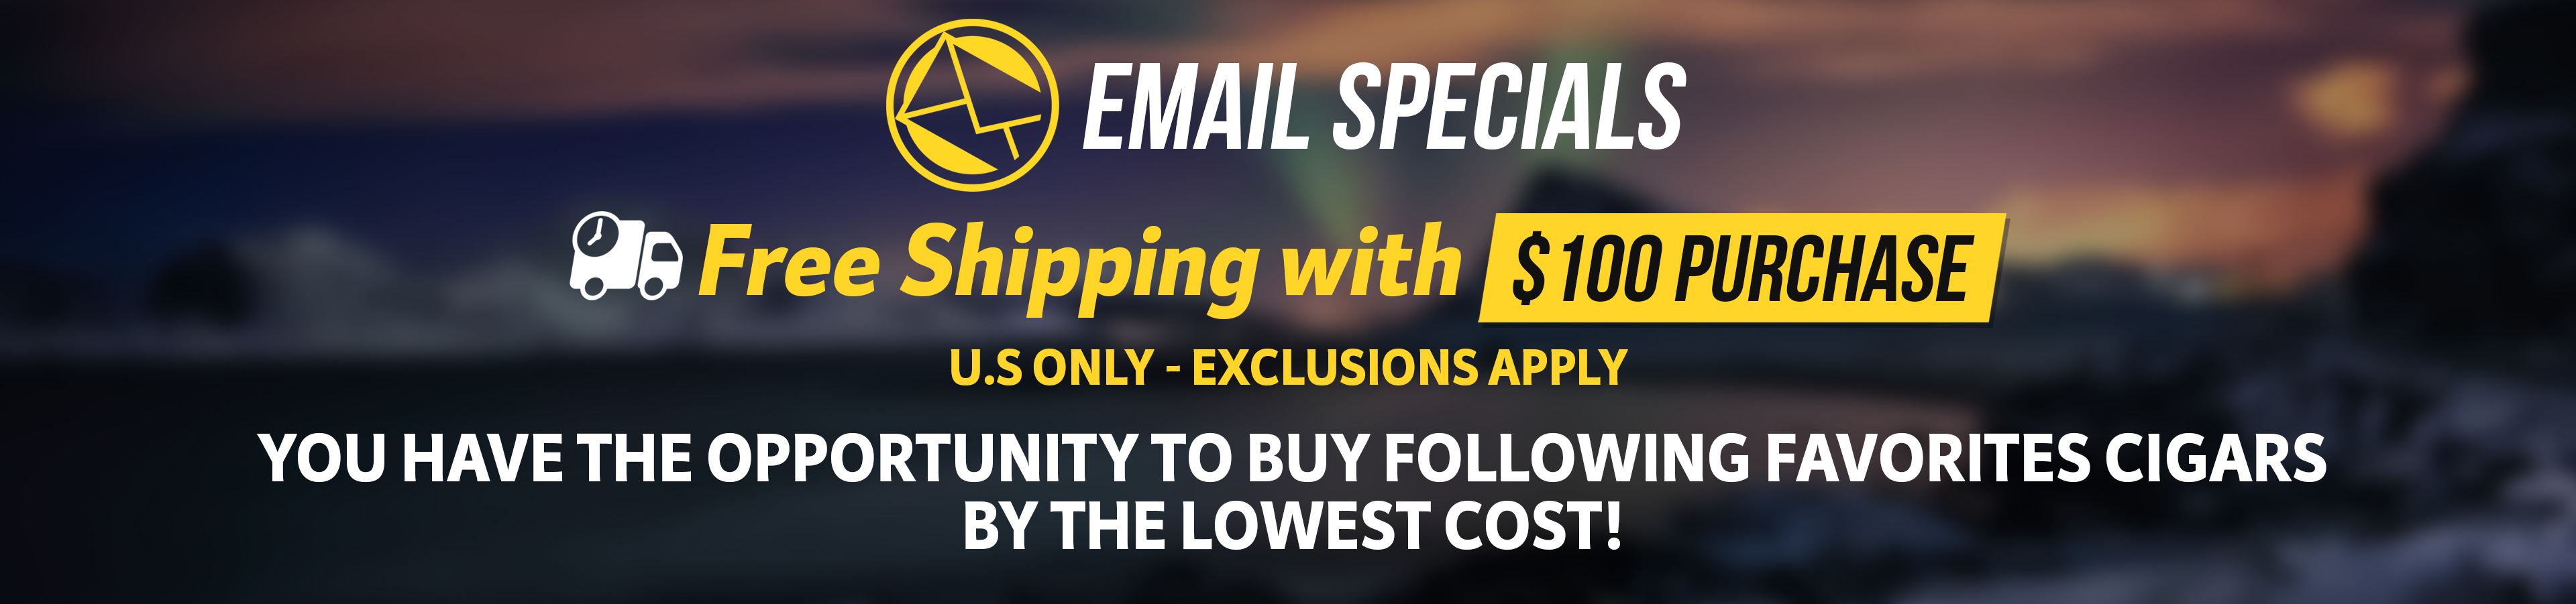 banner-email-specials-2.jpg